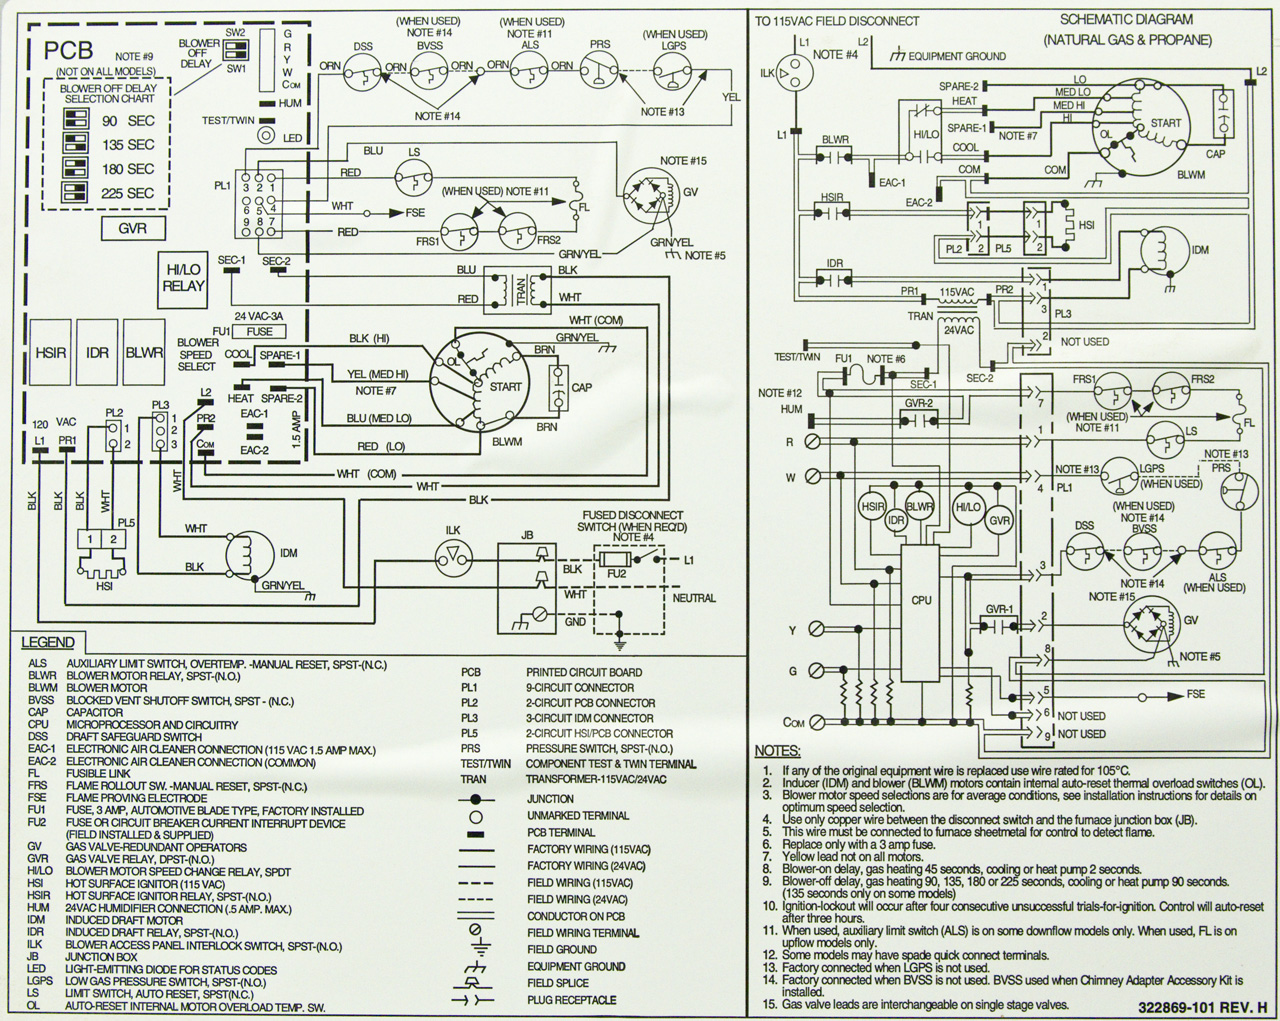 old gas furnace wiring diagram schematics and wiring diagrams rheem gas furnace wiring diagram diagrams schematics ideas